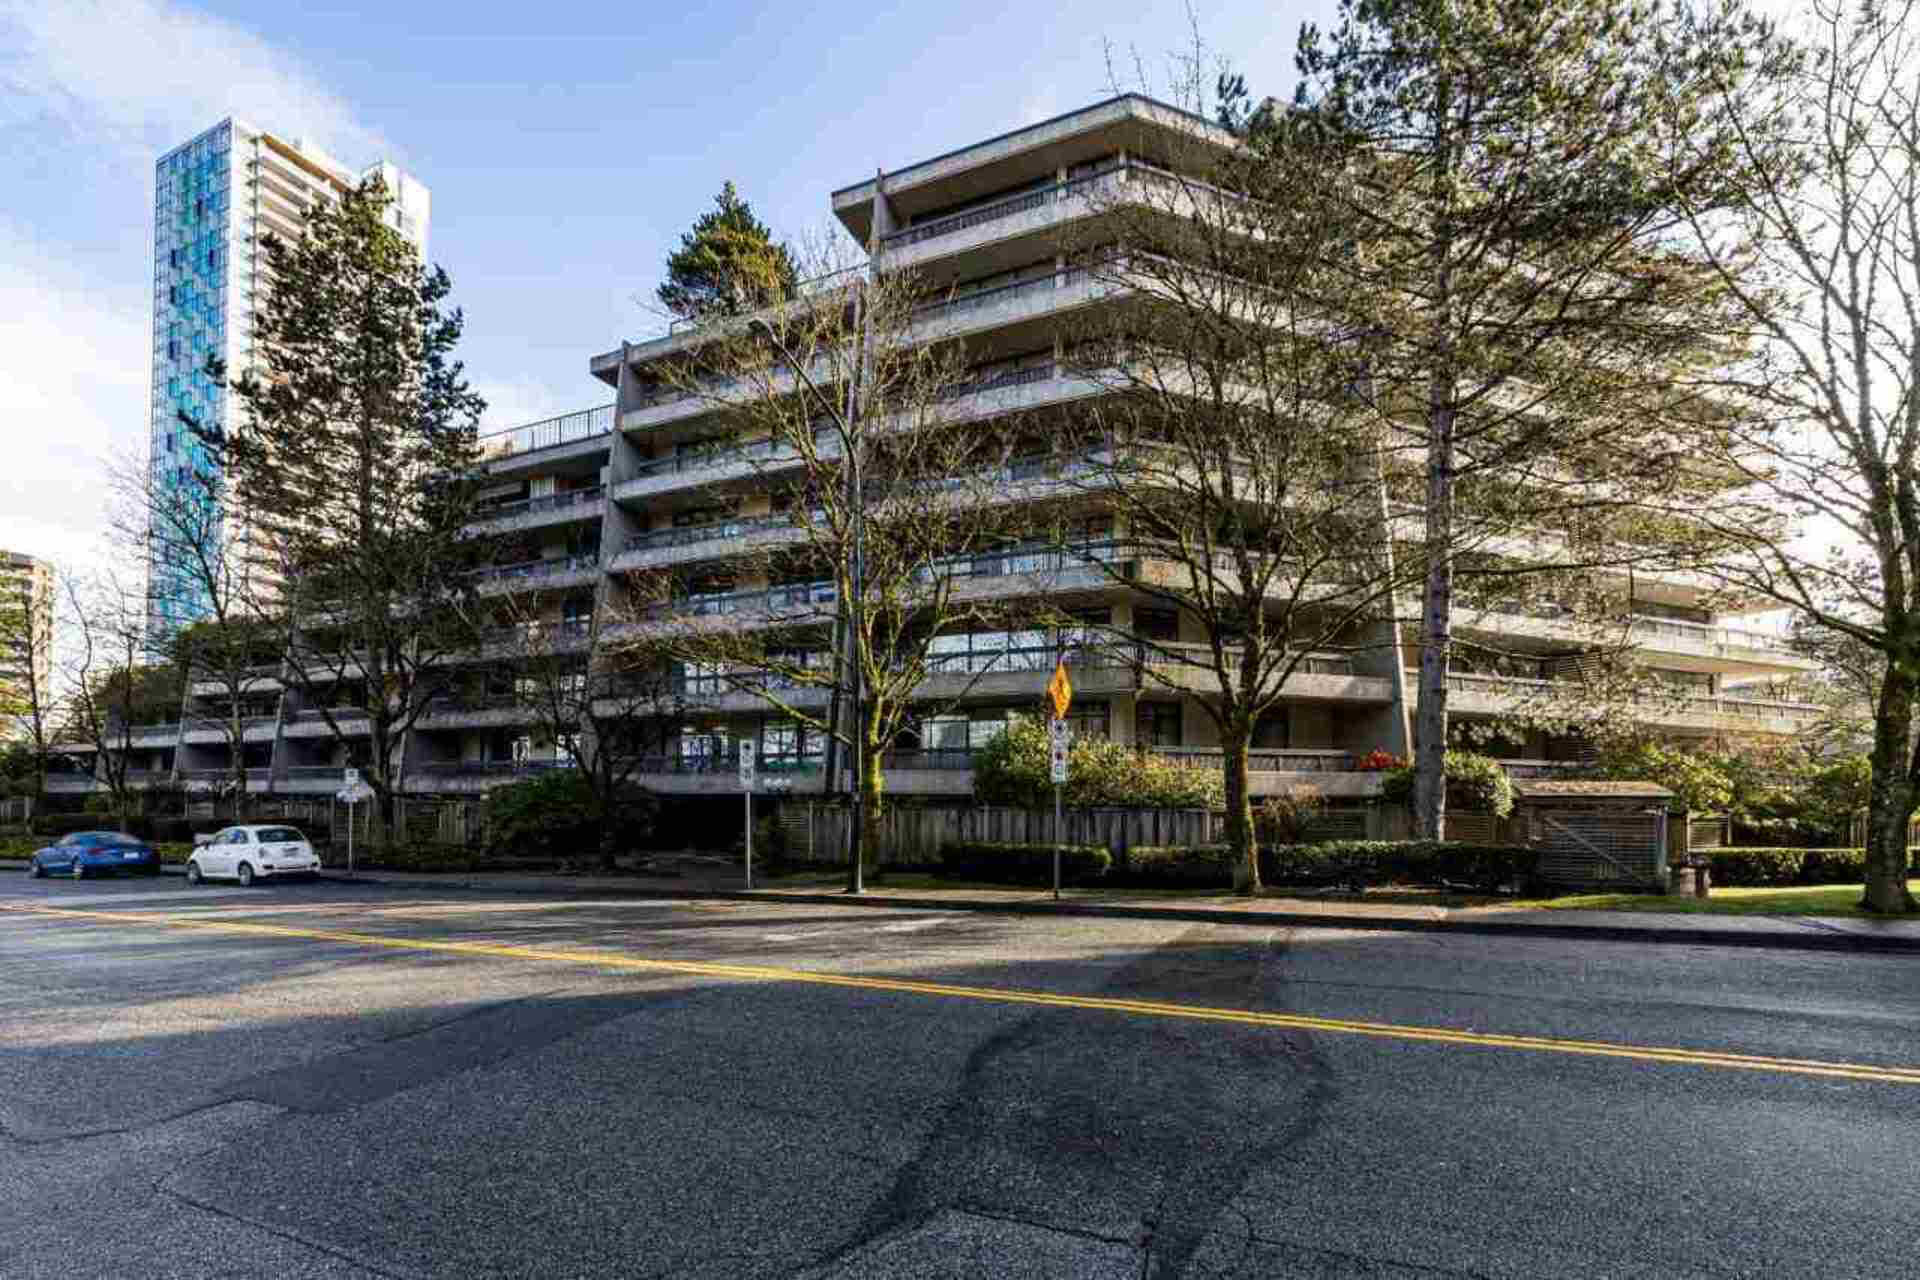 5932-patterson-avenue-metrotown-burnaby-south-01 at 501 - 5932 Patterson Avenue, Metrotown, Burnaby South